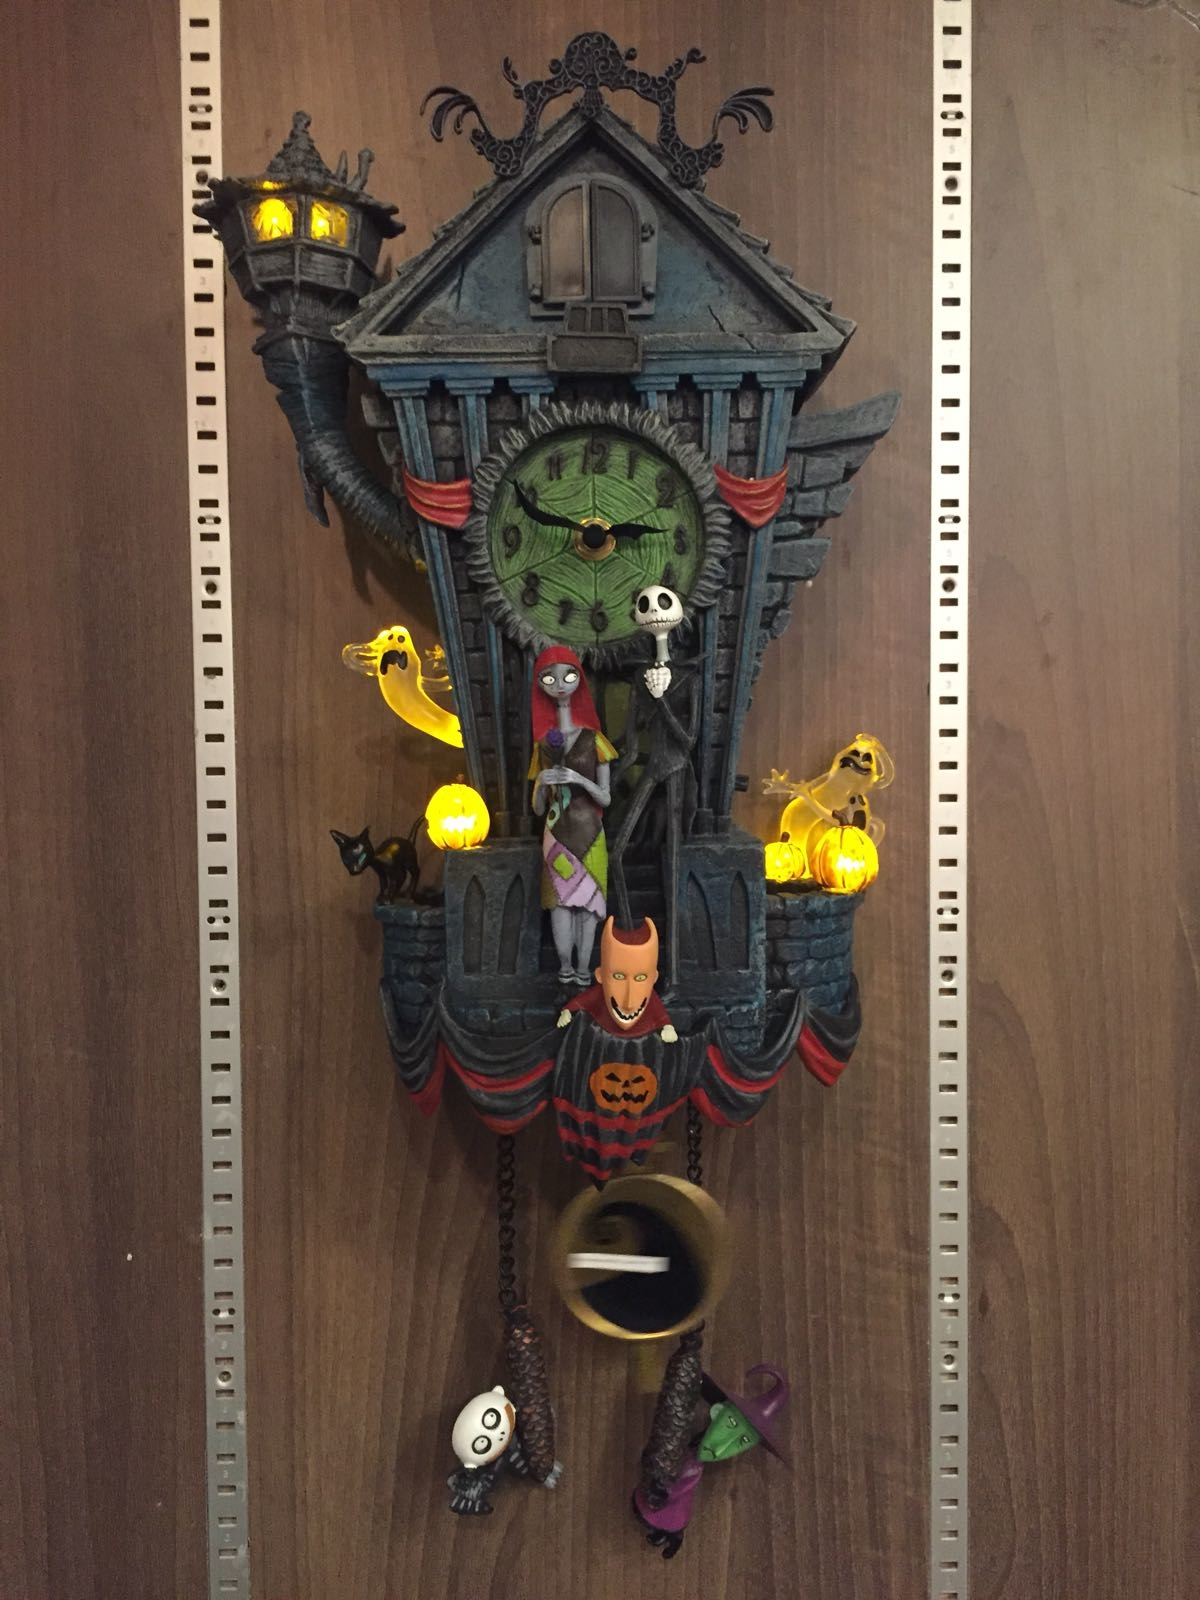 聖誕禮物系列- Cuckoo Clock: Tim Burton\'s The Nightmare Befor